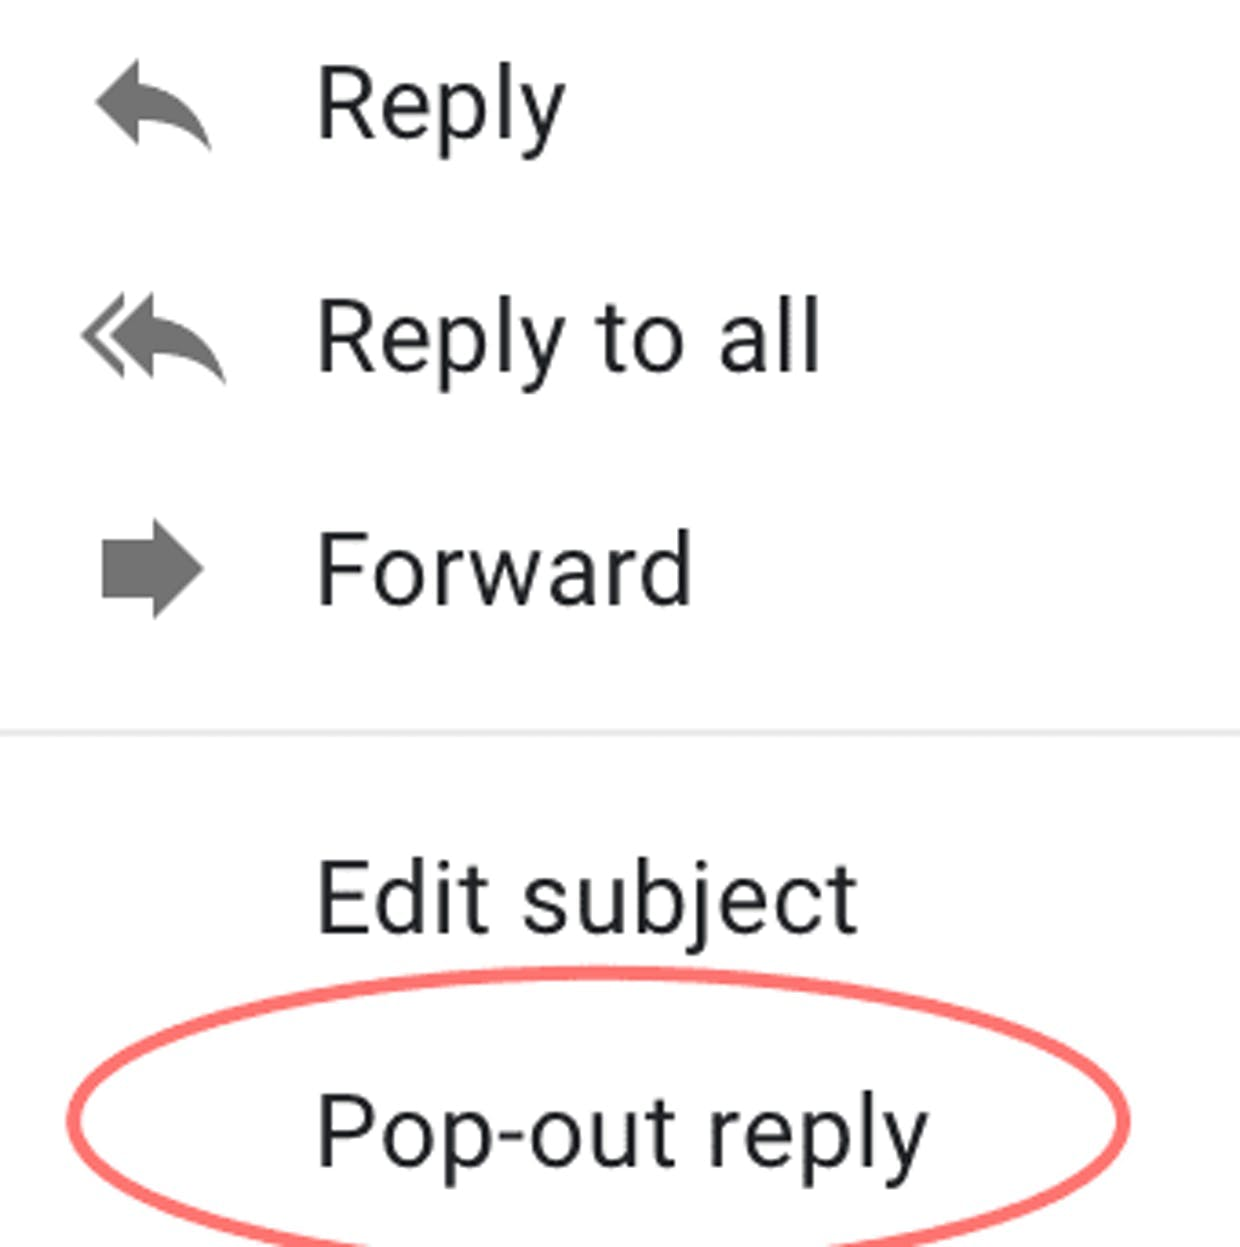 Having this would reduce the amount of manual scrolling up and down to check what was previously said when responding to emails in Pipedrive